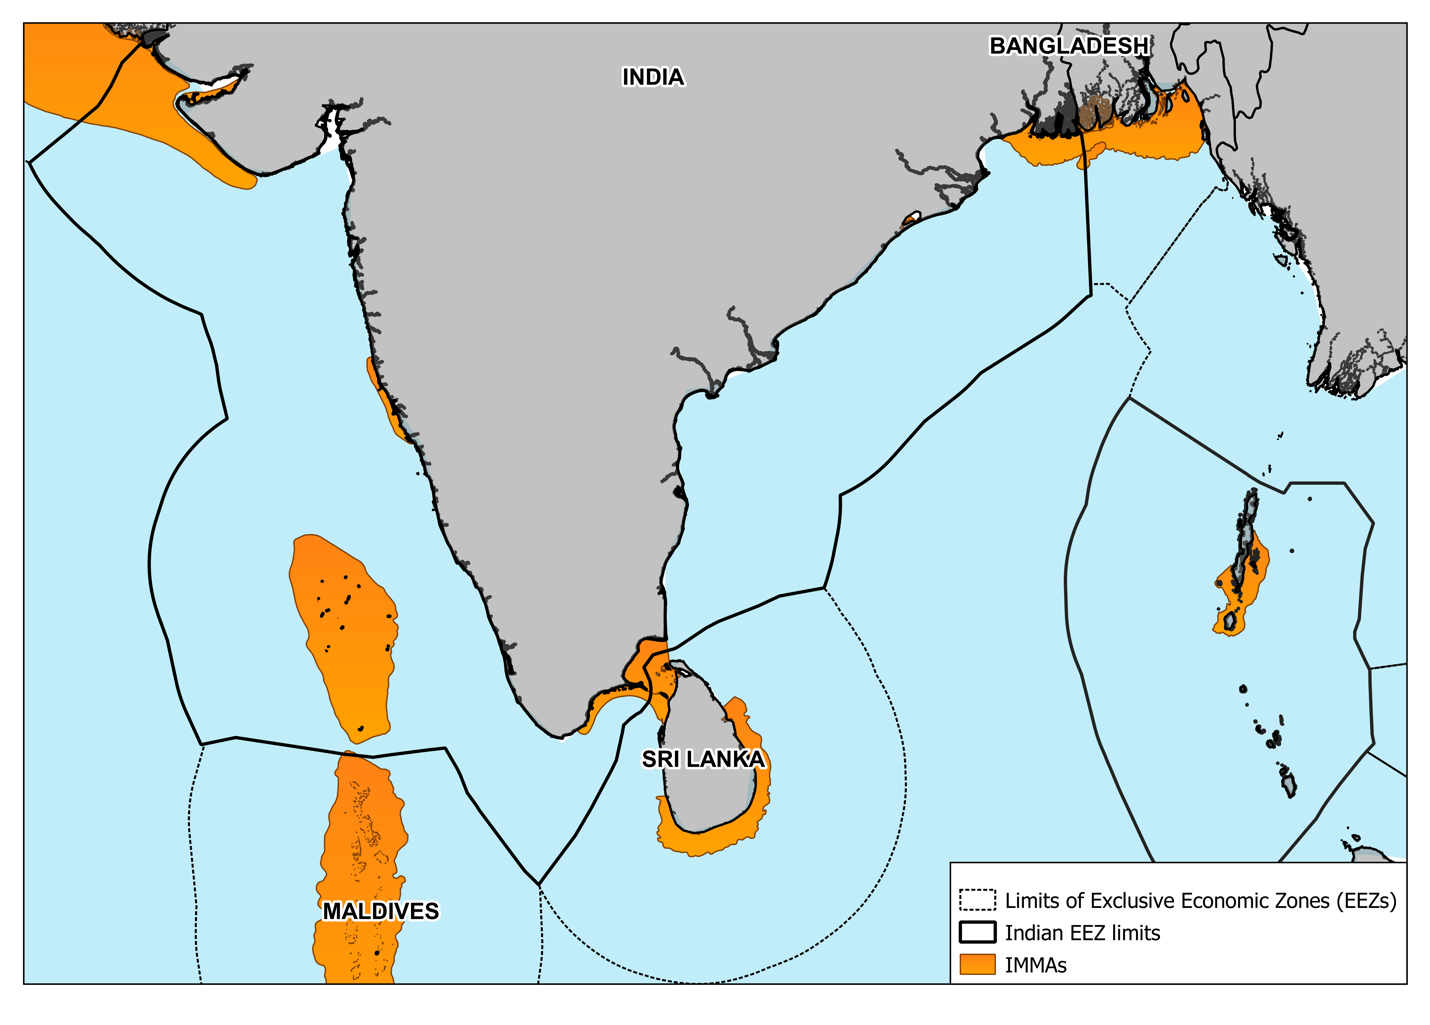 Figure 2: Important Marine Mammal Areas (IMMAs) in/ around India's EEZ. Image created by author, Mr Eklavya Tiwary. Data Source: IUCN MMPATF (2020) Global Dataset of Important Marine Mammal Areas (IUCN-IMMA). December 2020. Made available under agreement on terms and conditions of use by the IUCN Joint SSC/WCPA Marine Mammal Protected Areas Task Force and accessible via the IMMA e-Atlas http://www.marinemammalhabitat.org/imma-eatlas